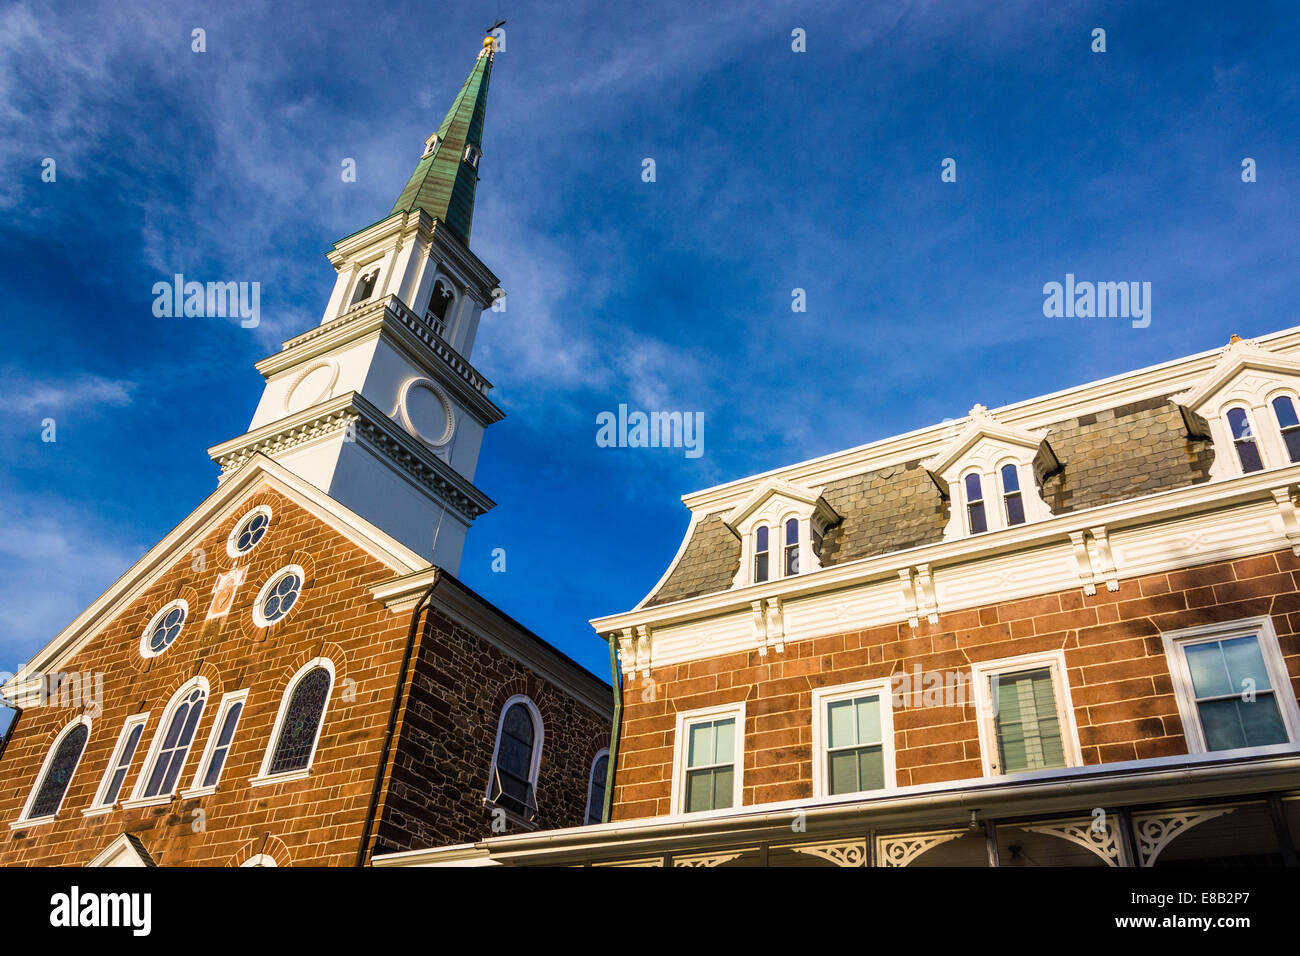 The Basilica of the Sacred Heart of Jesus, in Hanover, Pennsylvania. - Stock Image